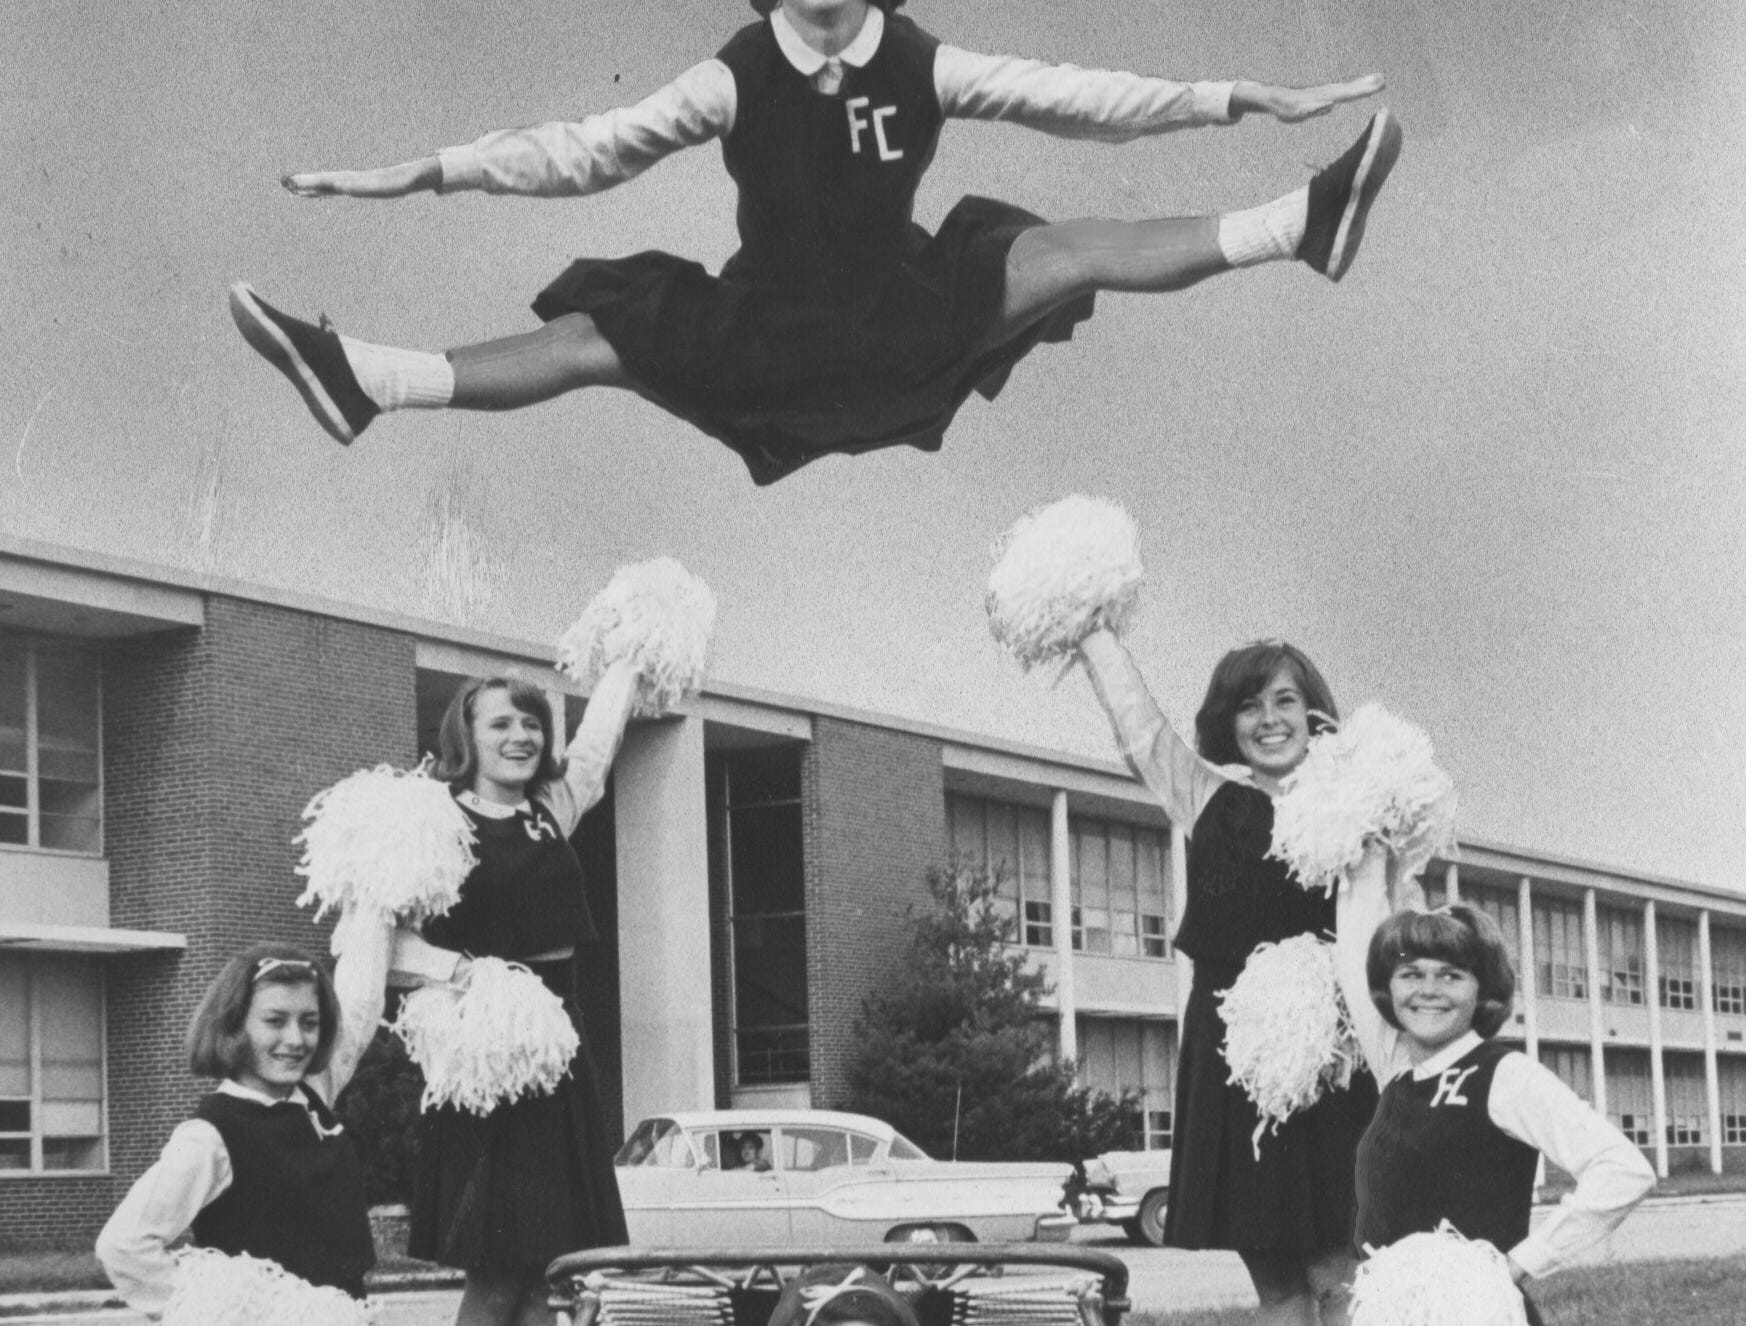 """At the cheerleaders training camp in Allentown, Pa., Franklin's """"Flyers"""" and Fort Lauderdale's team were named camp champs. Oct. 10, 1965"""